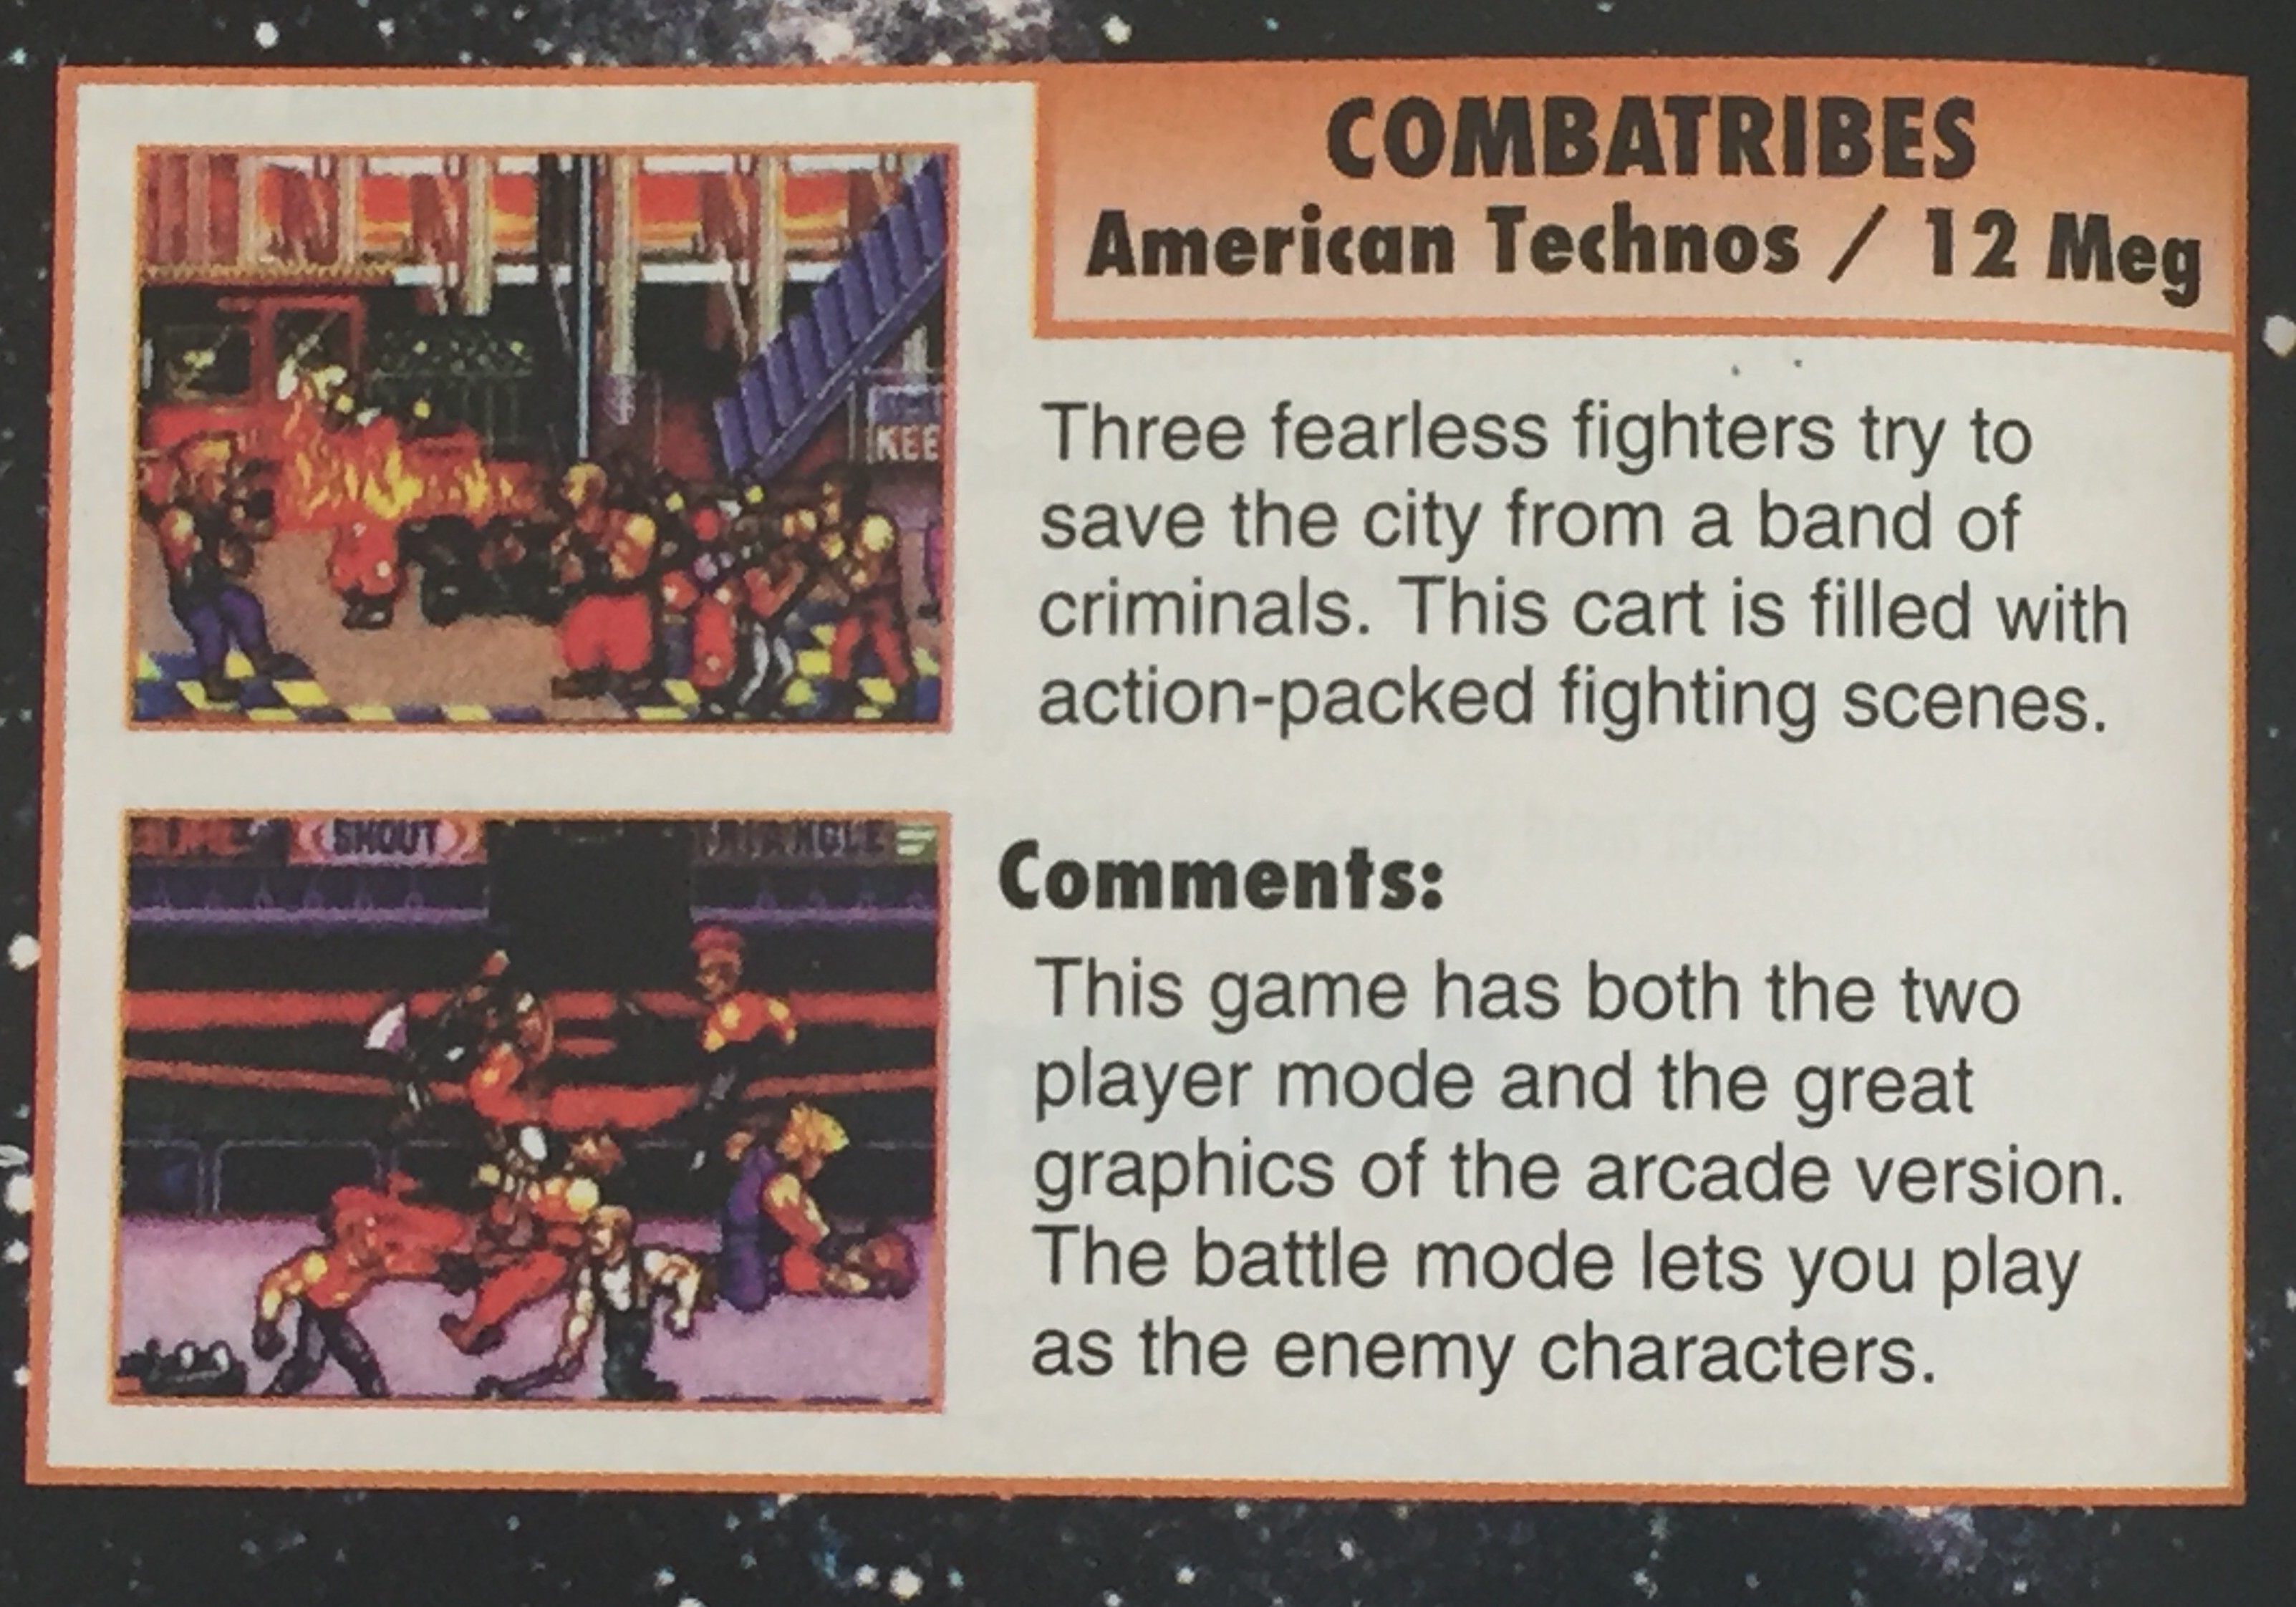 The graphics suggest it's an early SNES beta and not arcade